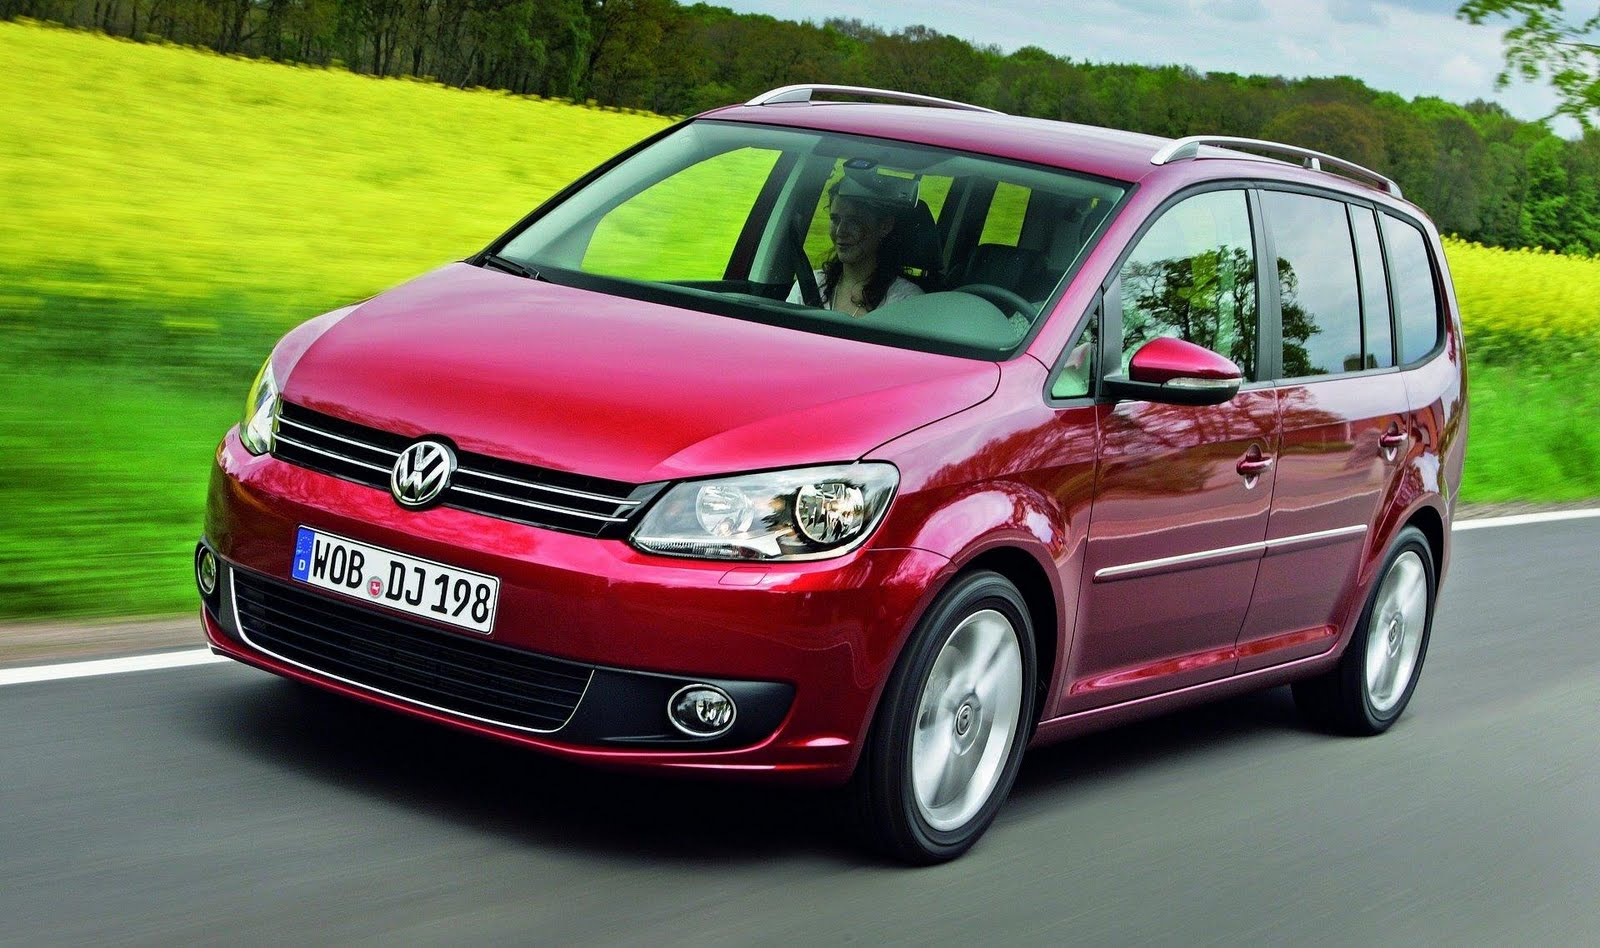 volkswagen touran 2012 review amazing pictures and images look at the car. Black Bedroom Furniture Sets. Home Design Ideas